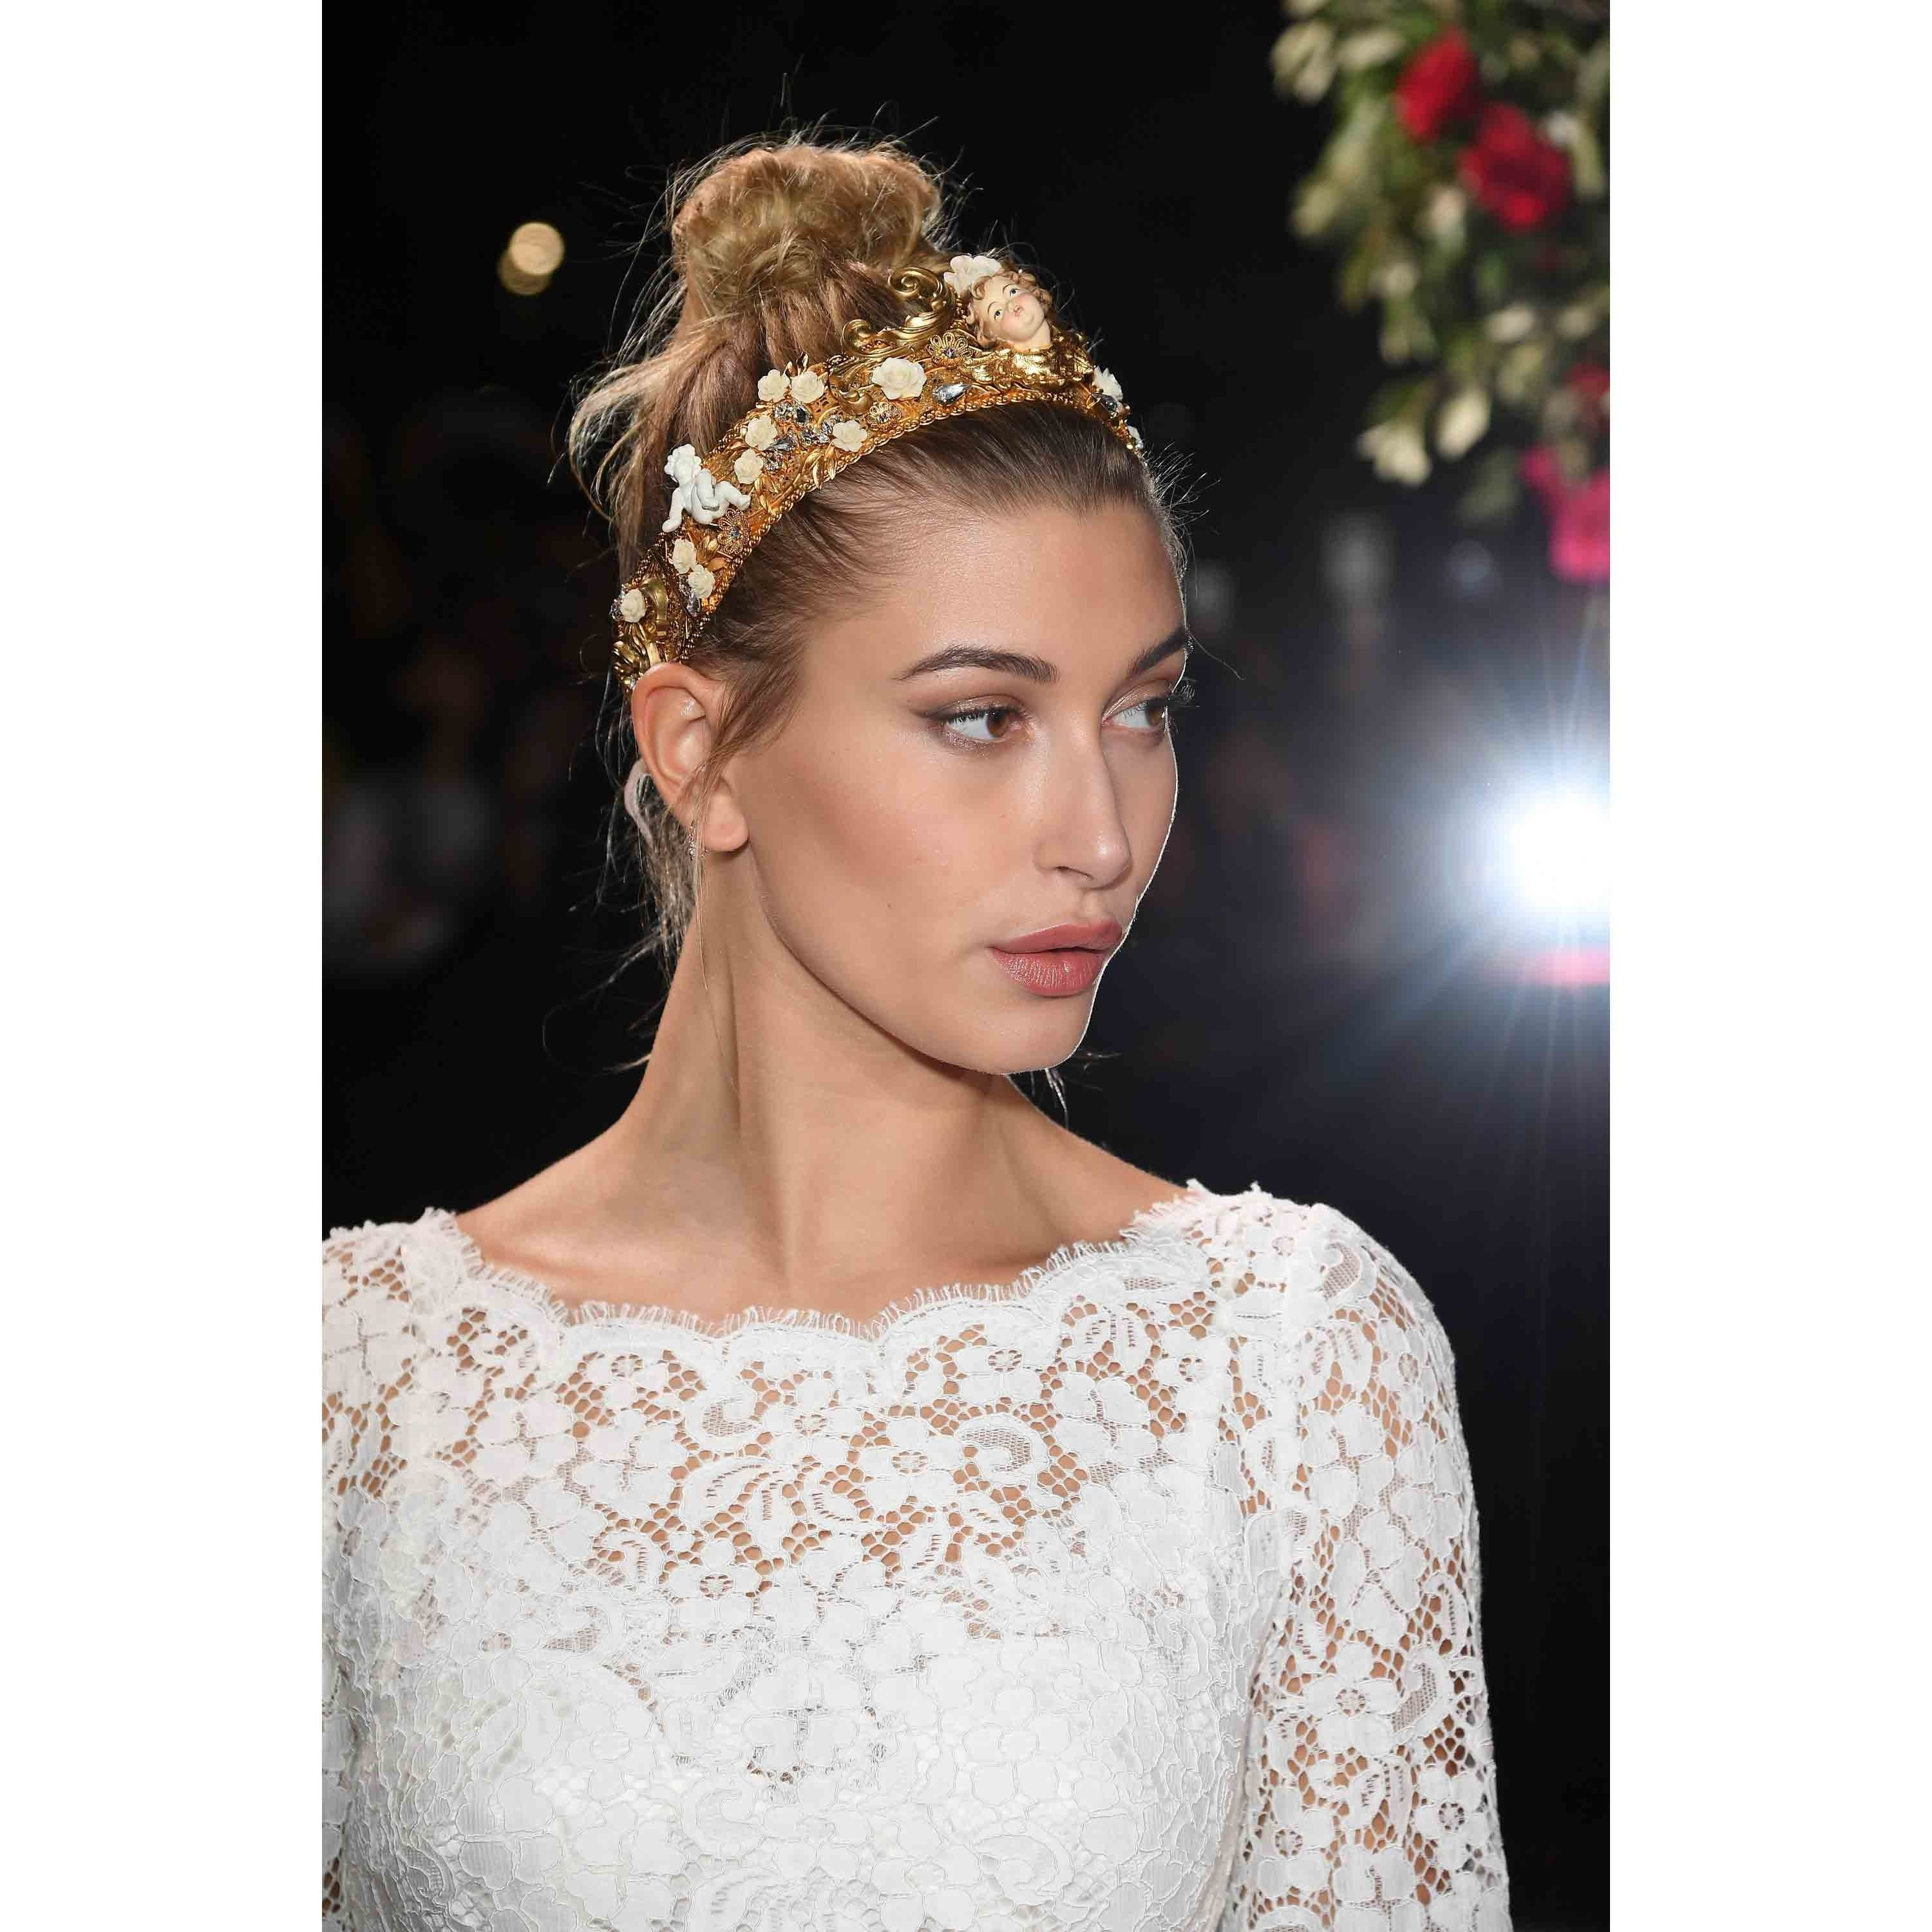 19 Holiday Hair Ideas For Every Type of Festivity | Allure